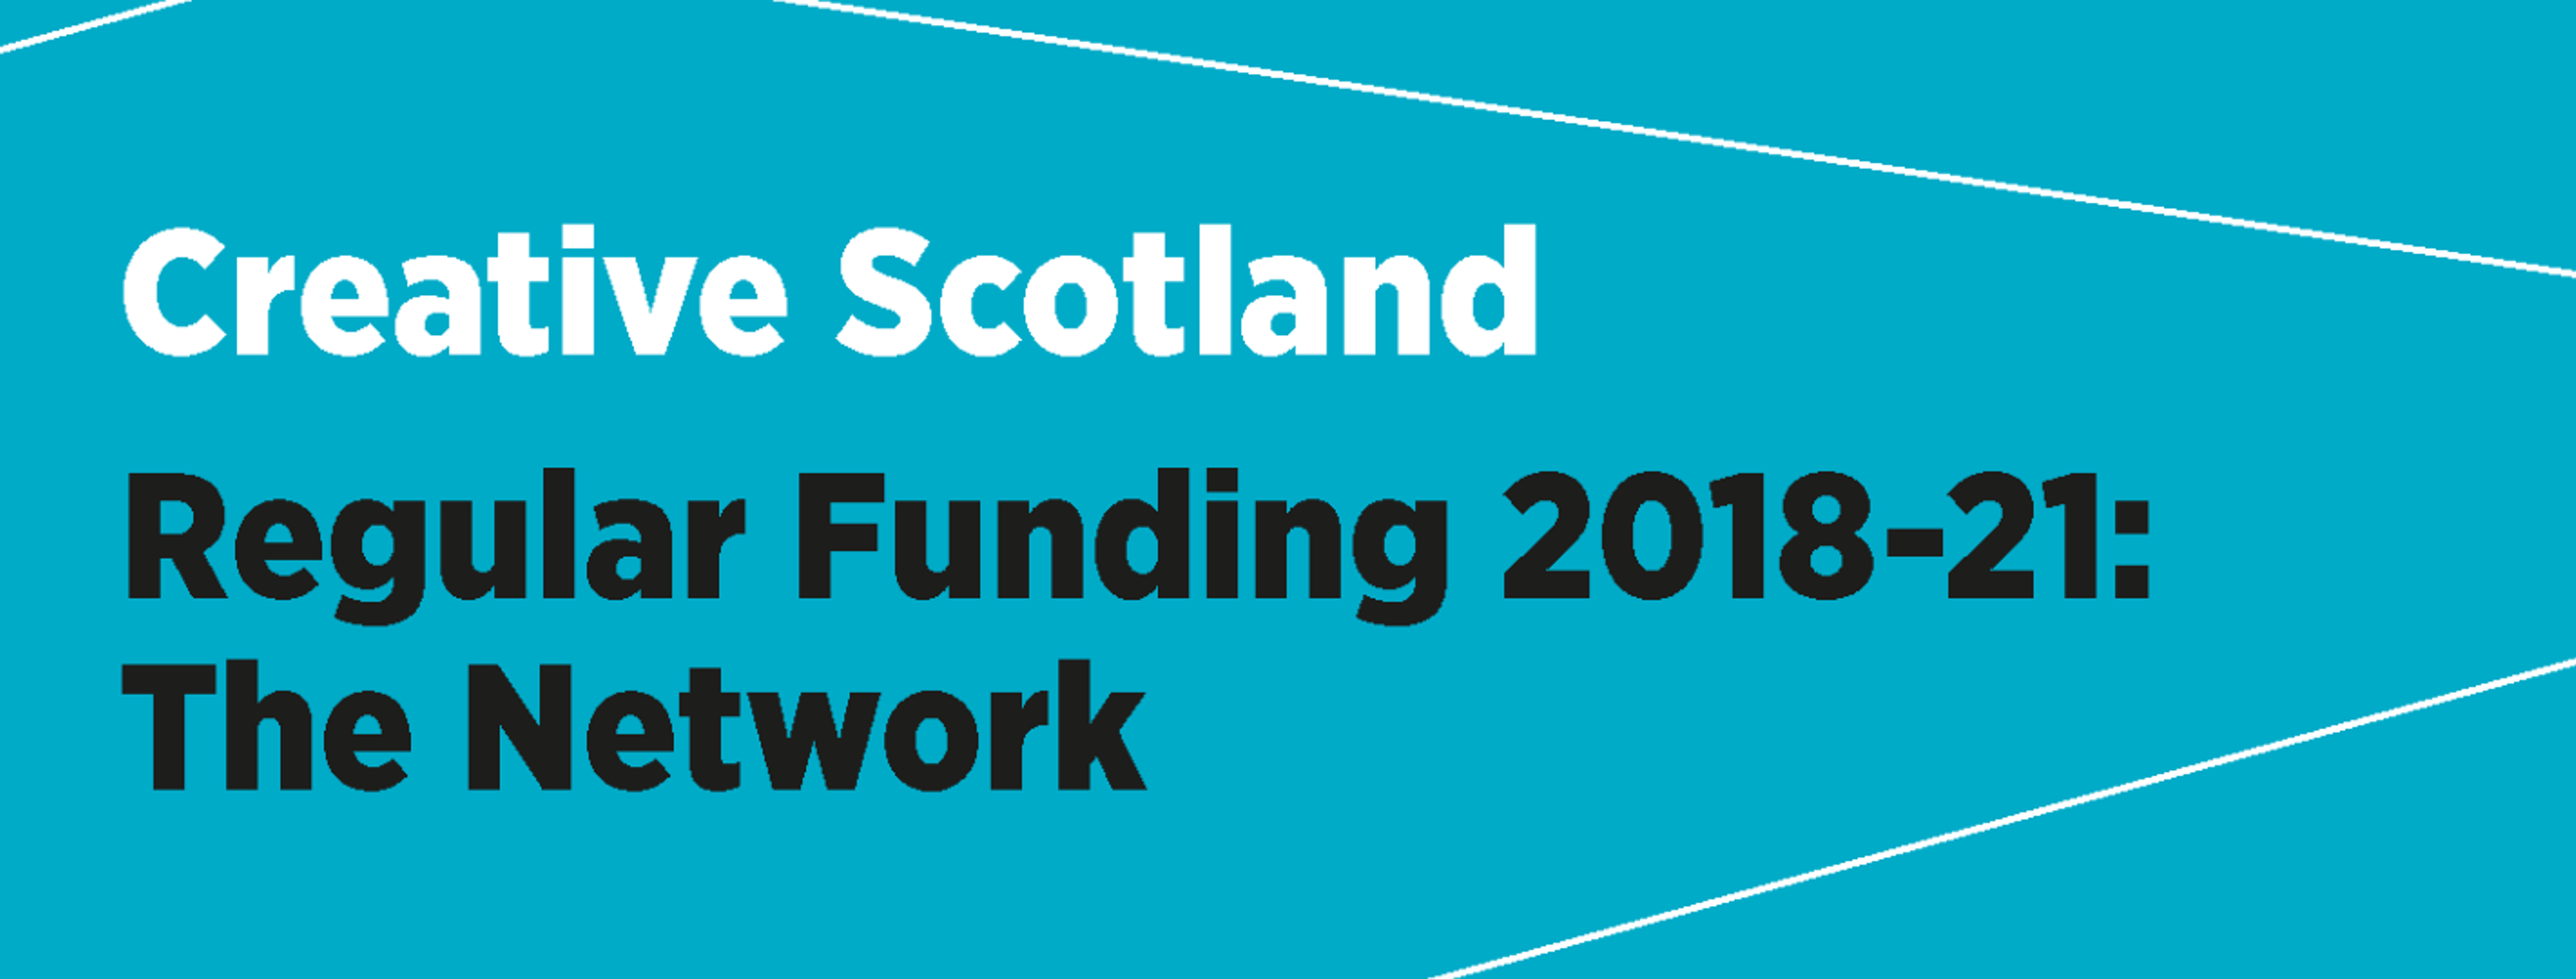 Creative Scotland RFO funding 2018-21